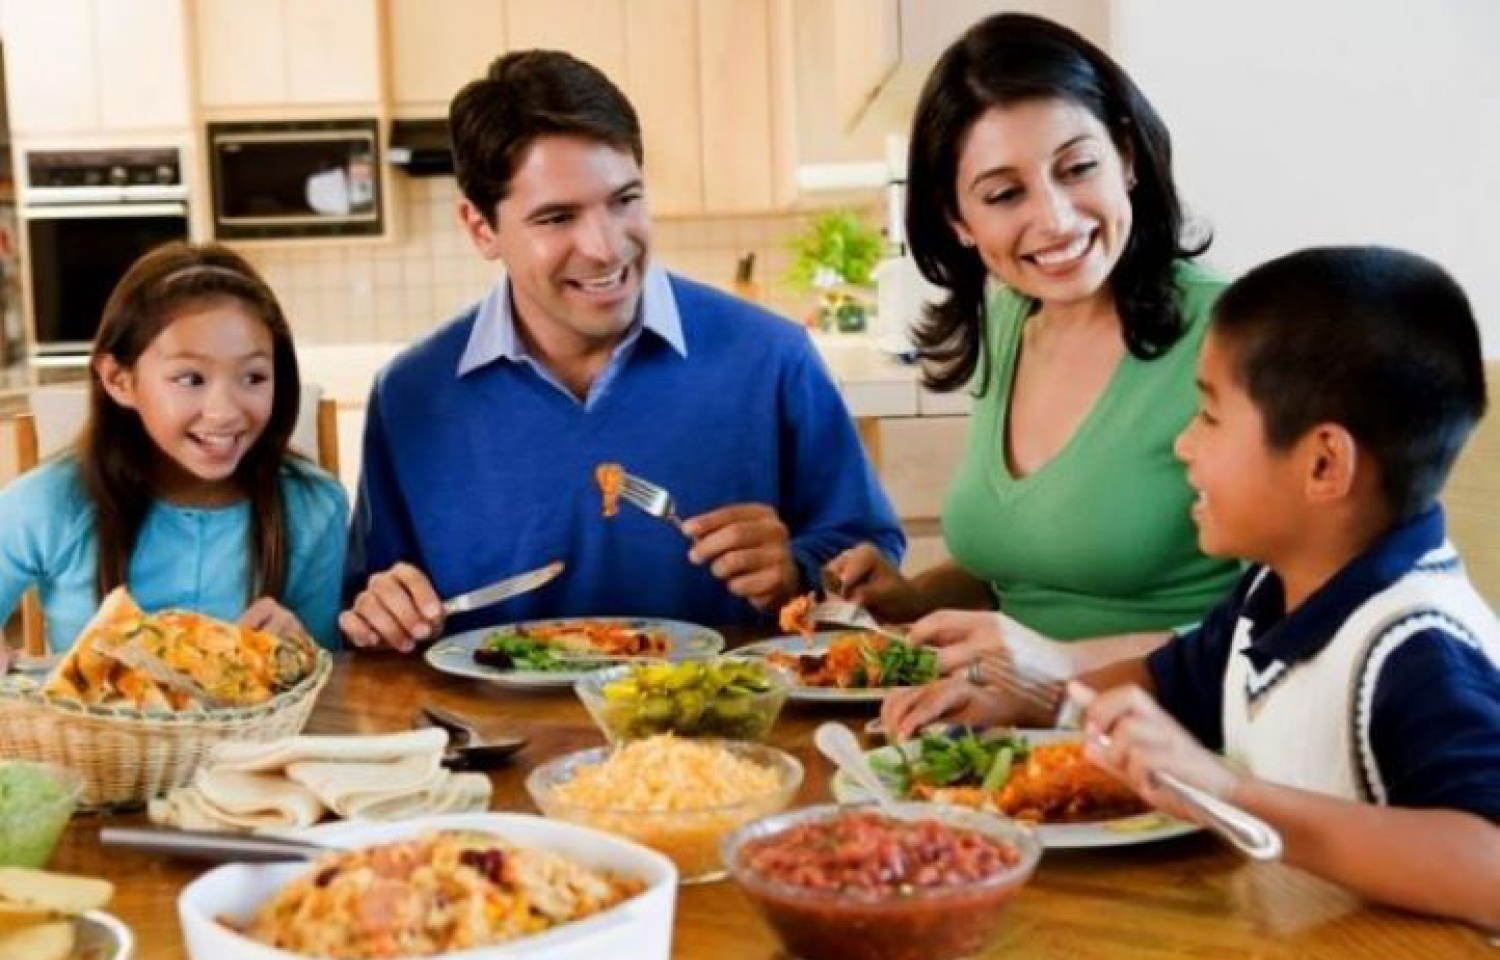 Benefits of Healthy Eating For Adults and Children